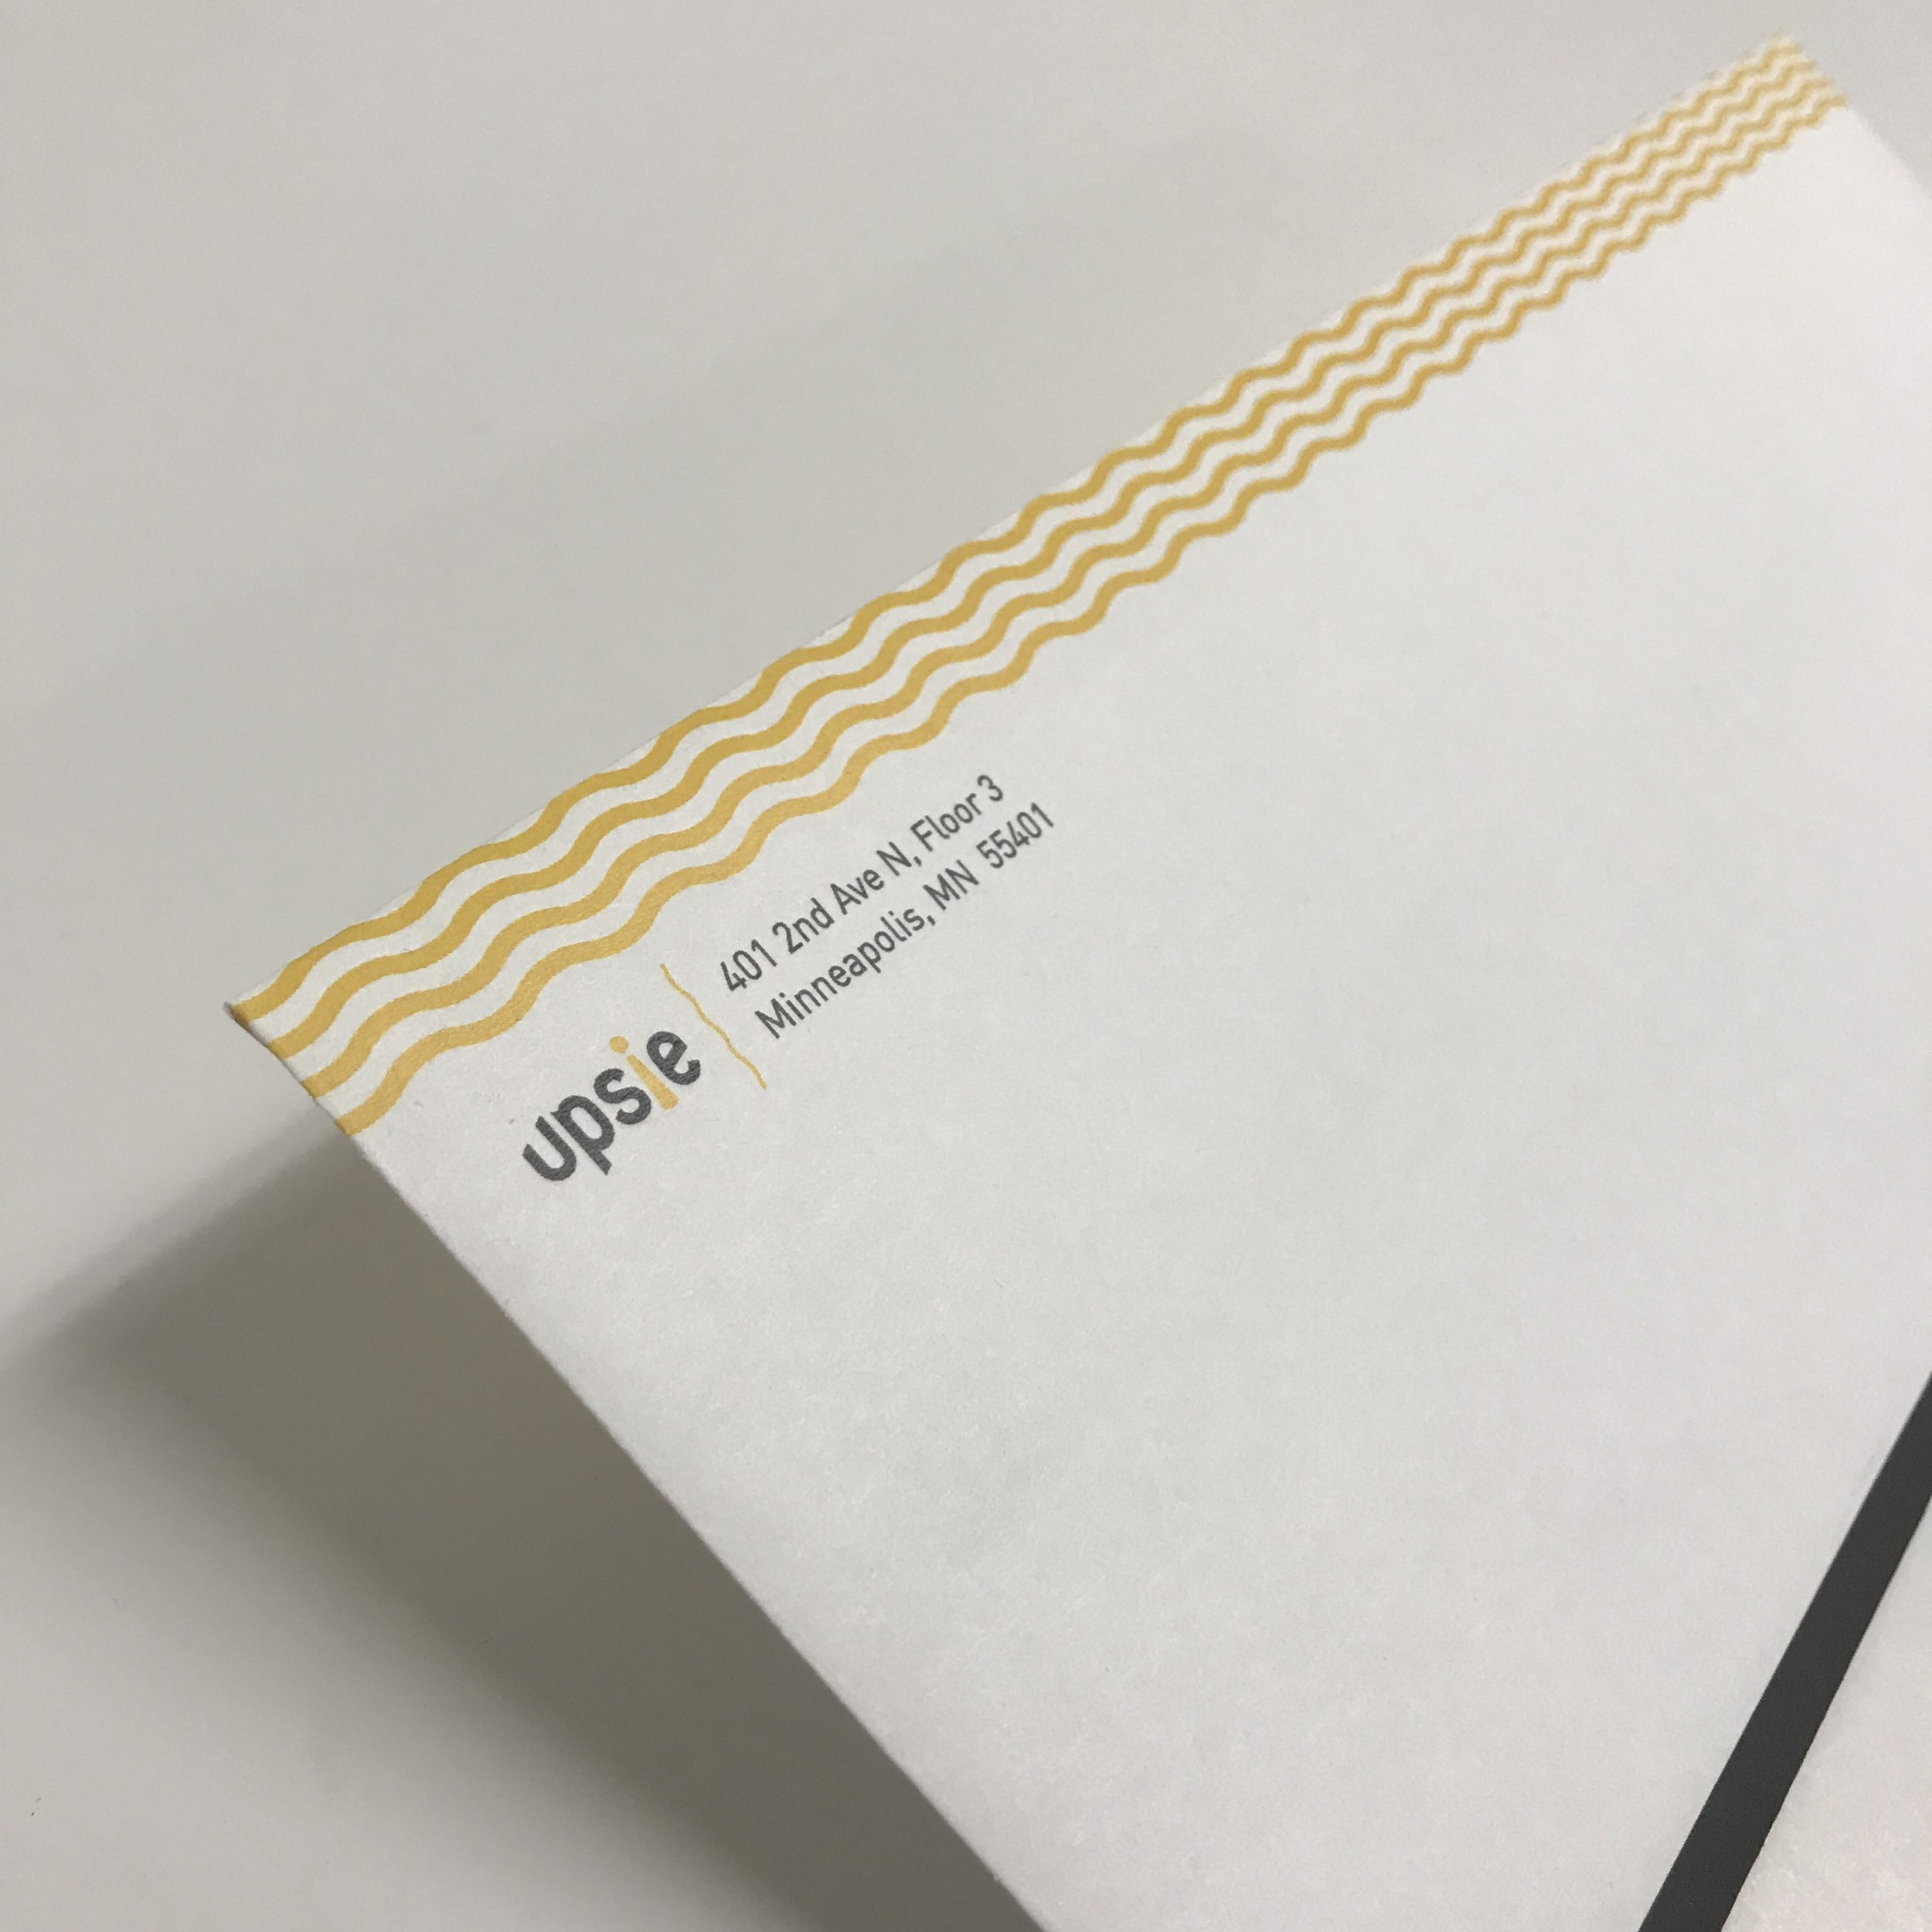 Professional corporate envelopes printed and converted in Minnesota